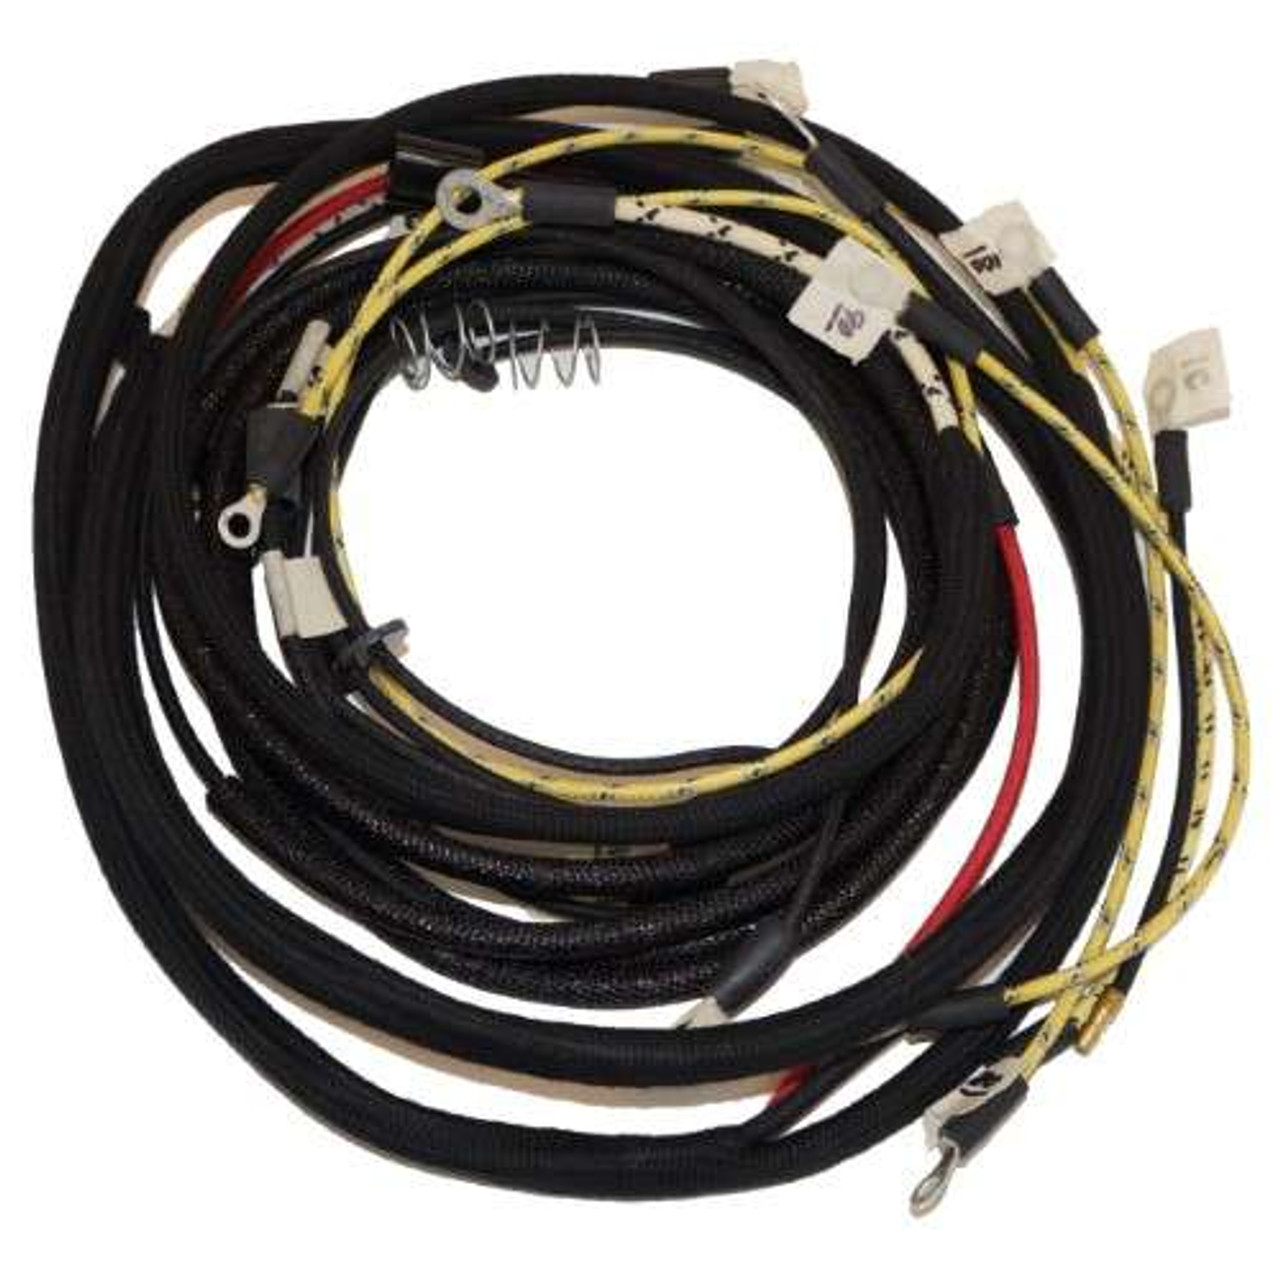 small resolution of wiring harness kit tractors with 1 wire alternator allis chalmers wd wd45 djs tractor parts llc